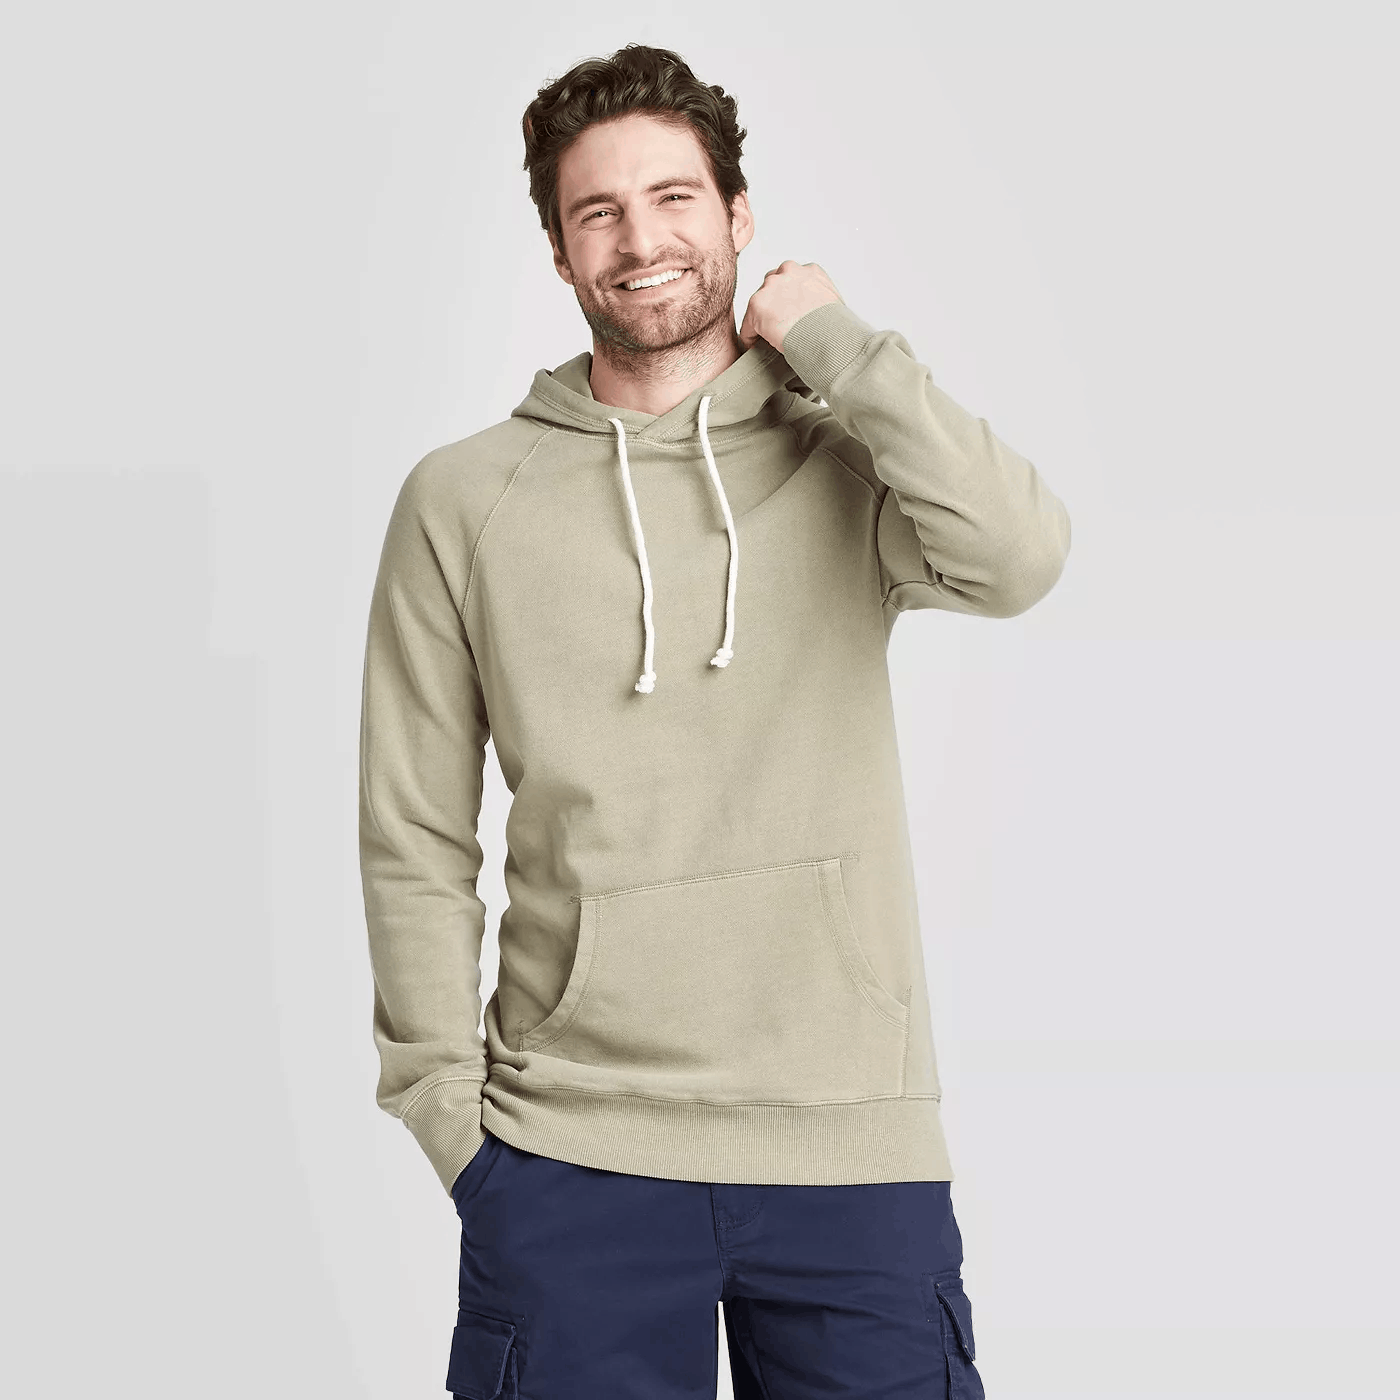 Hoodie is a great gift for teen boys